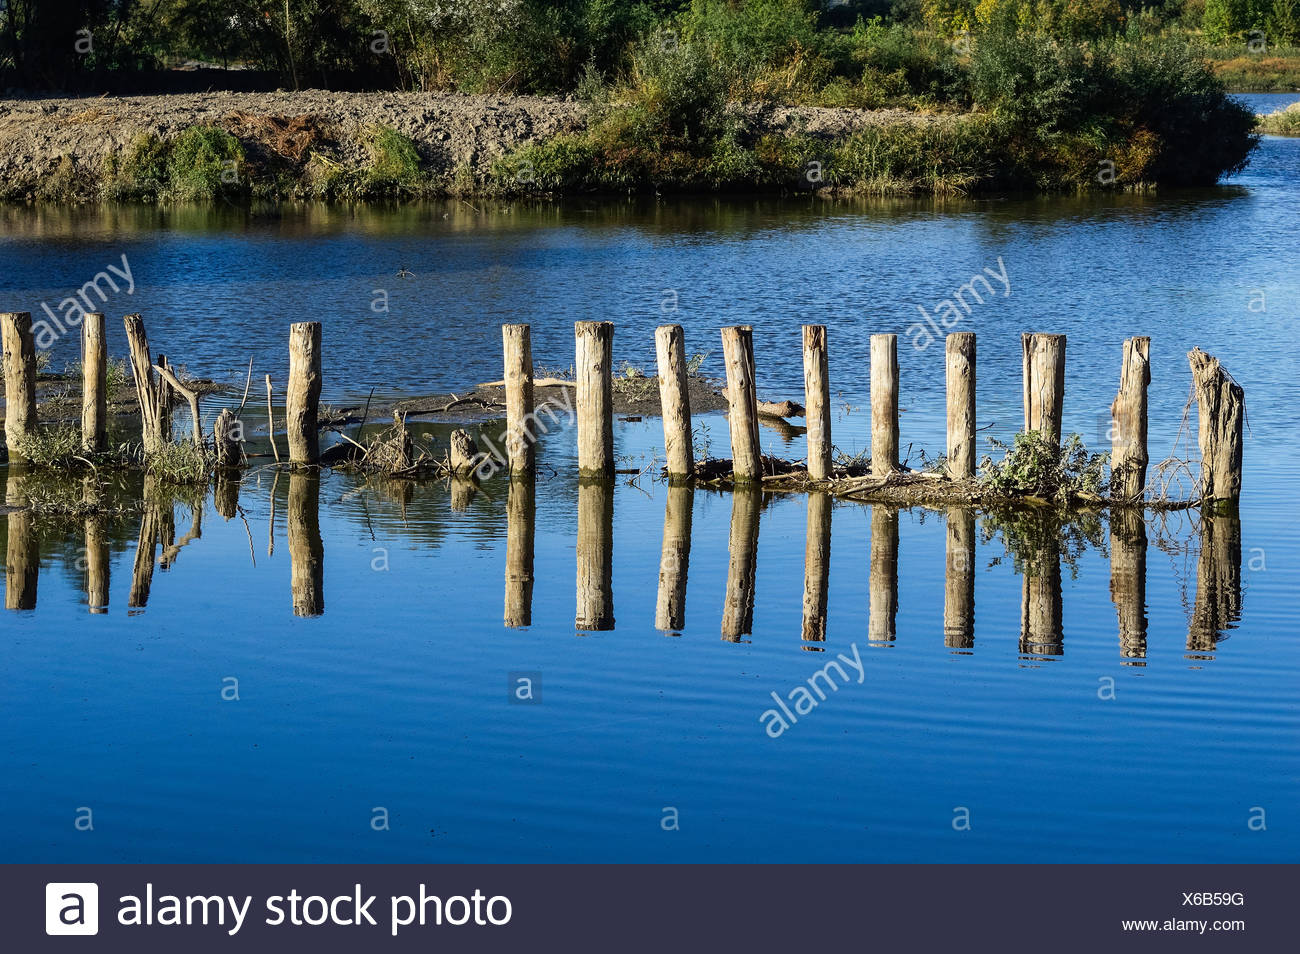 Lock and Who in the waterway - Stock Image